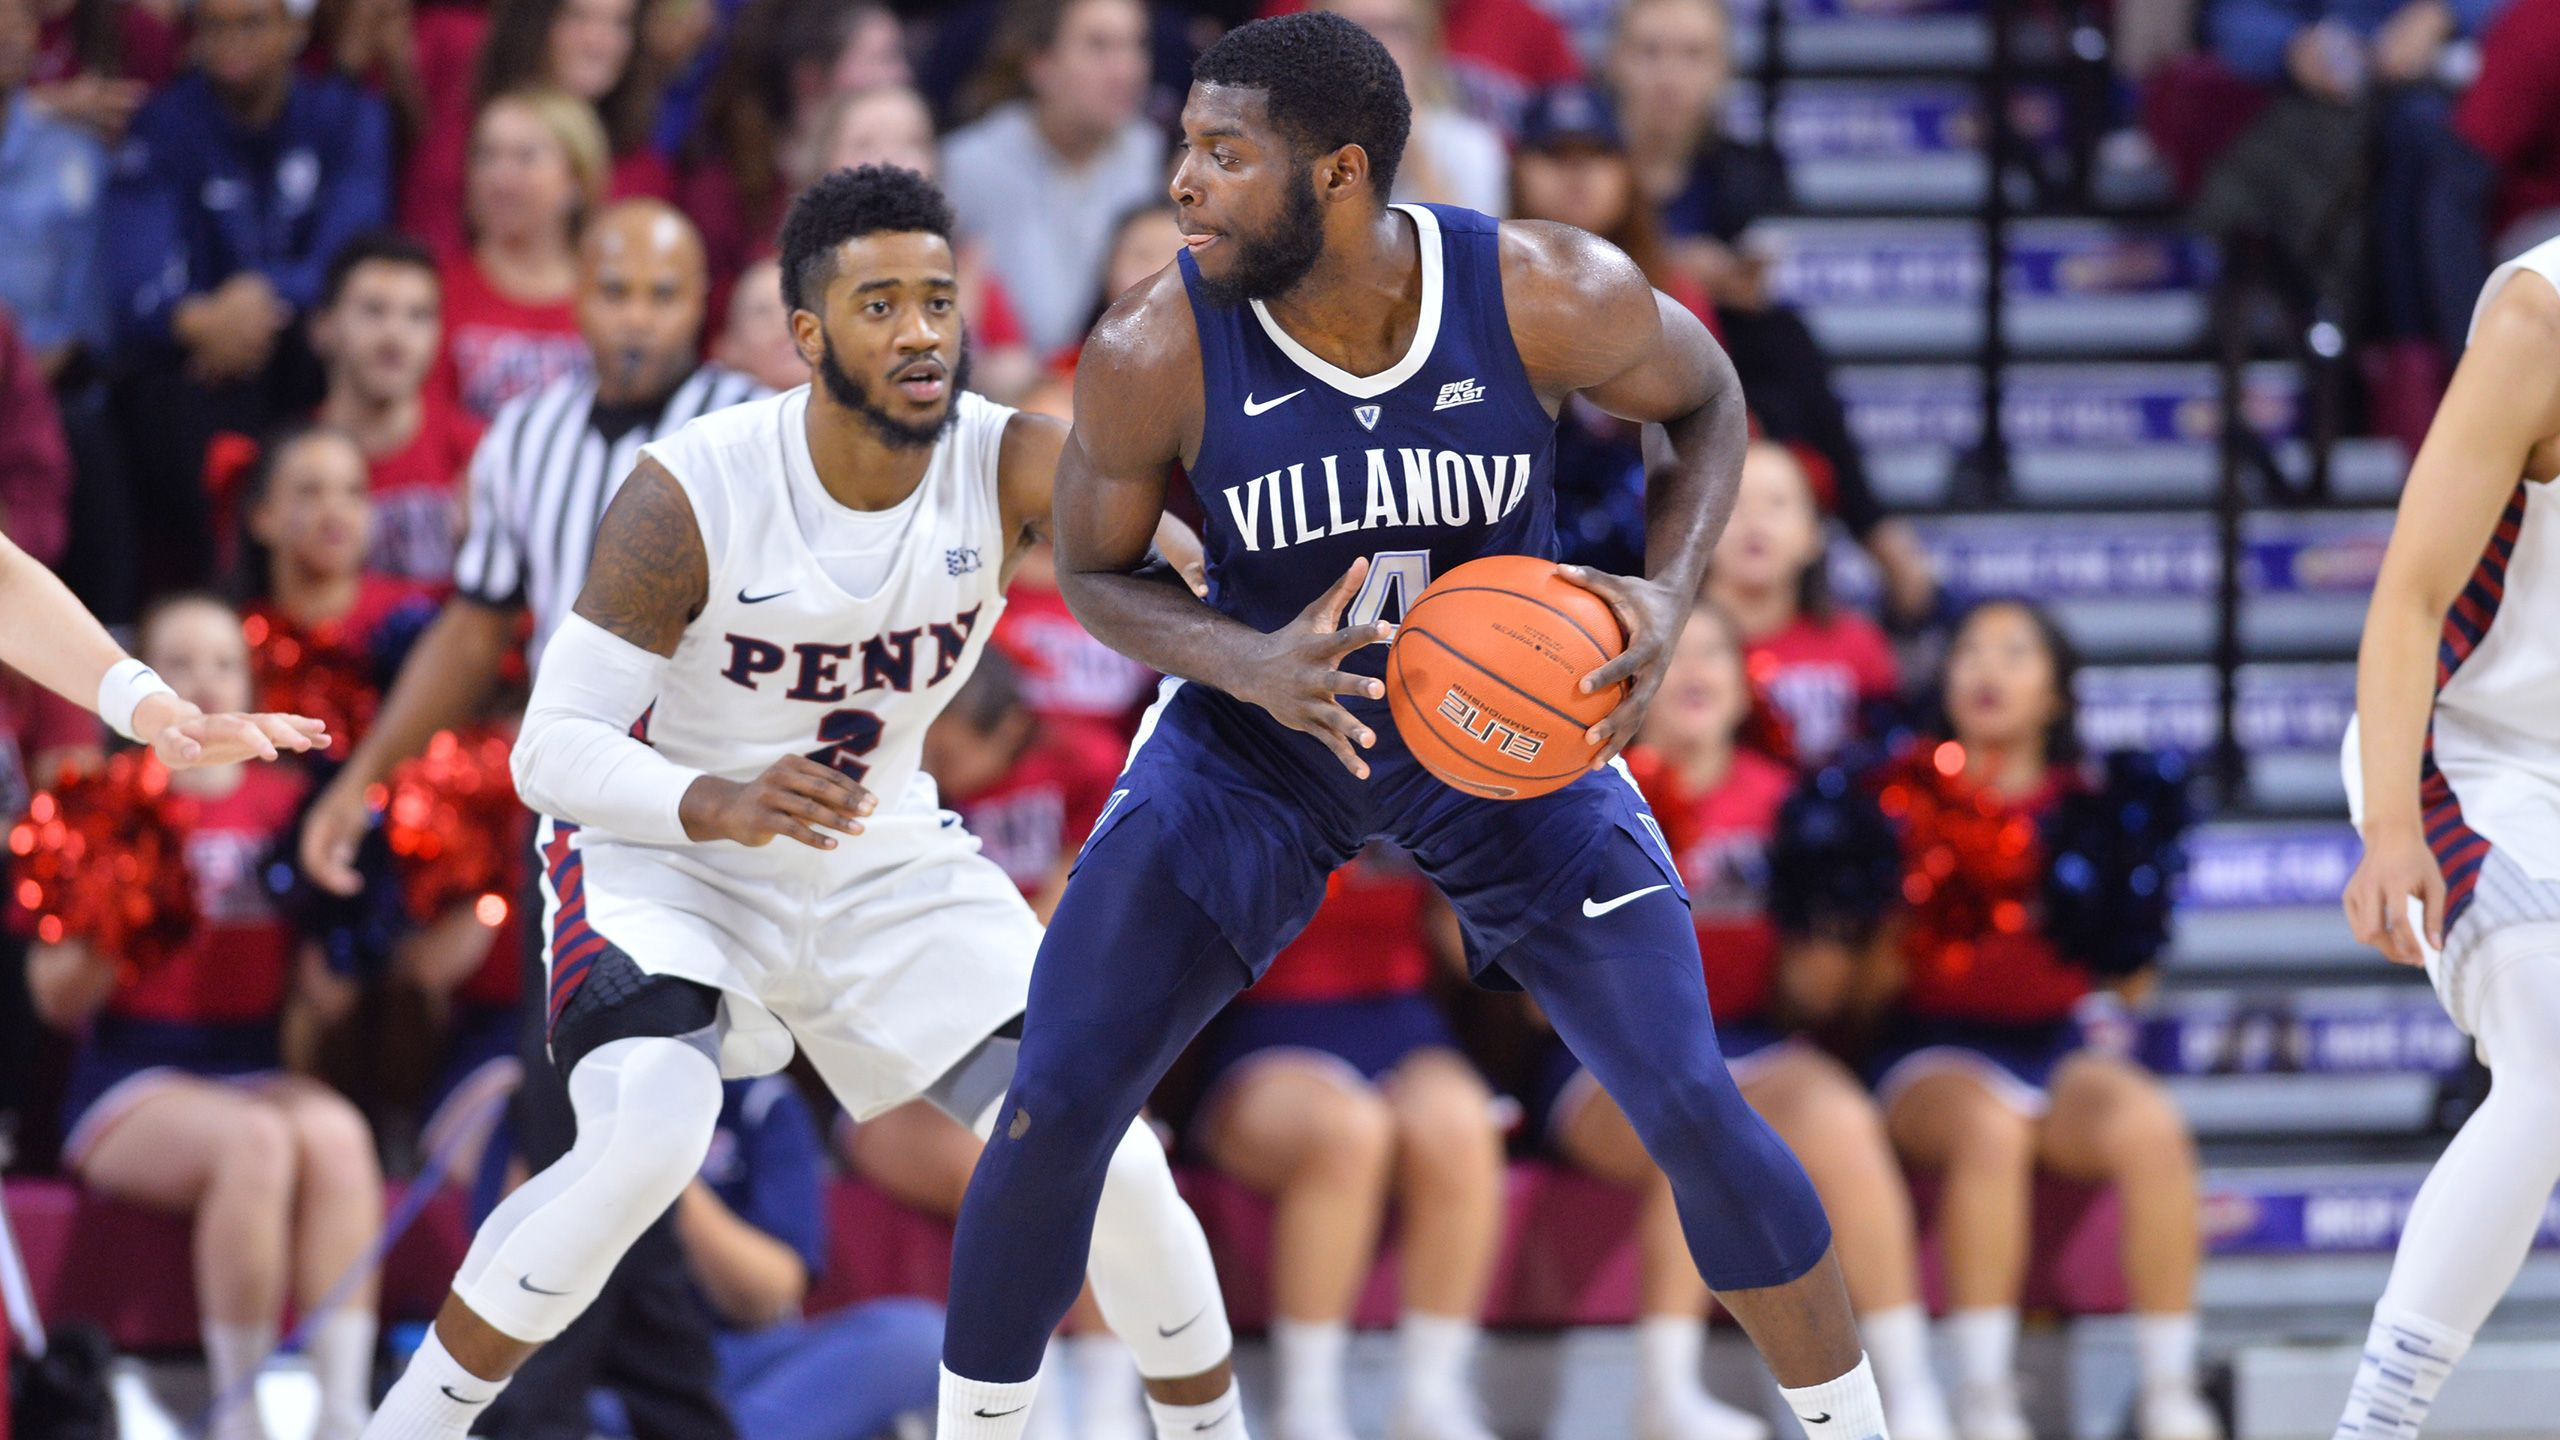 #17 Villanova vs. Pennsylvania (M Basketball) (re-air)